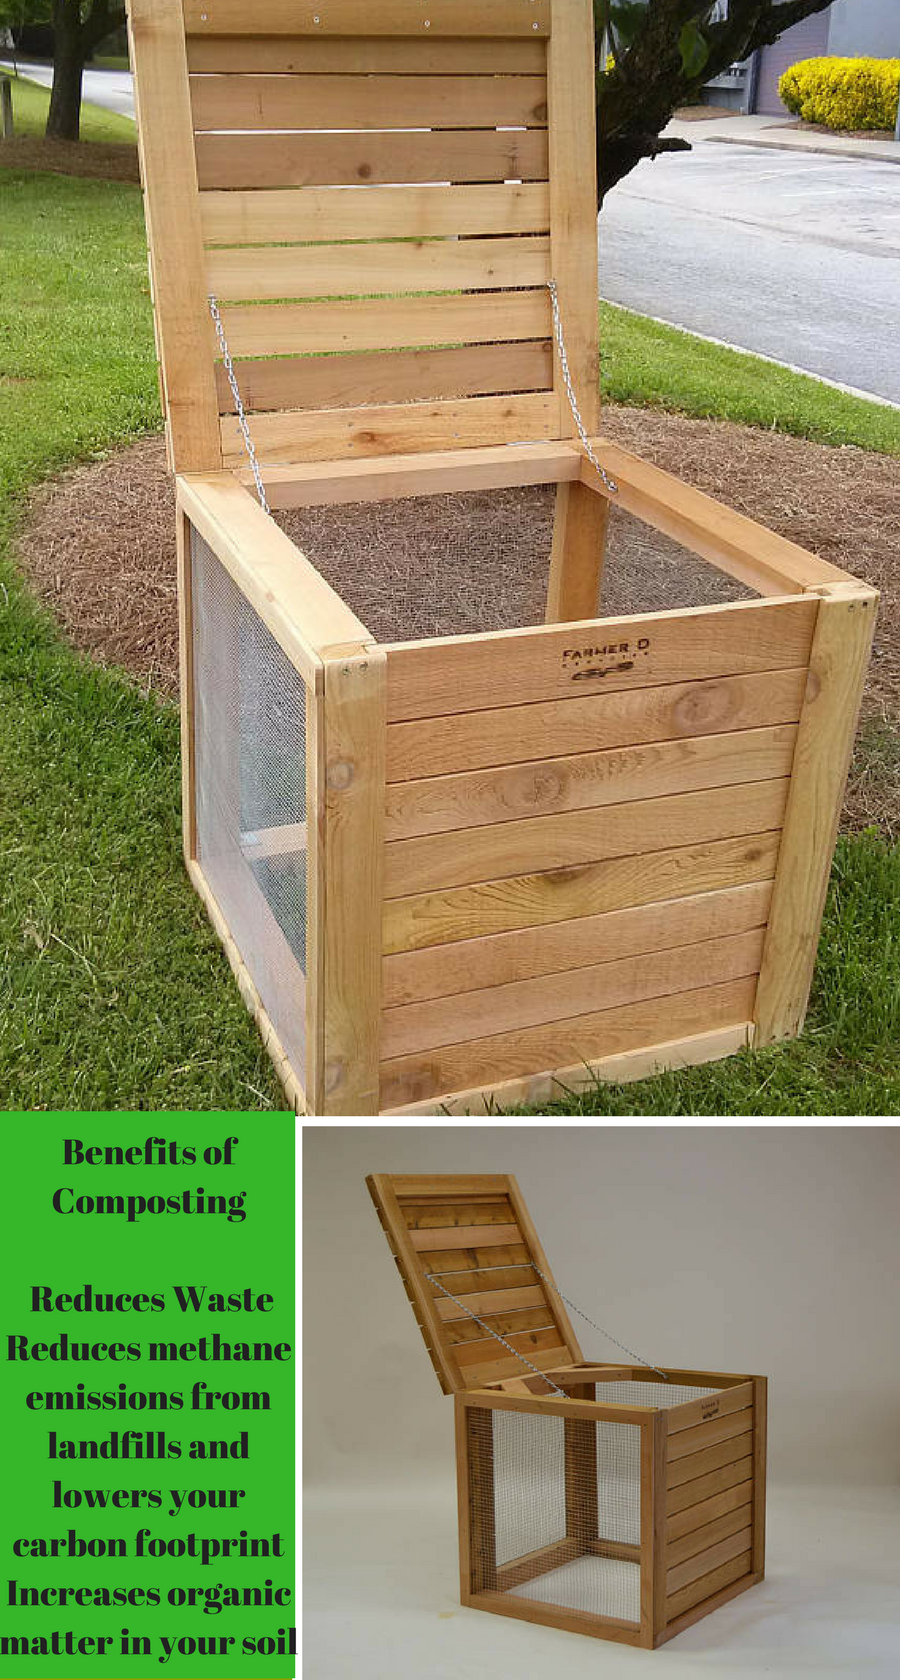 This Farmer D Handmade Cedar Compost Bin Serves As A Near Rodent Proof Container For Your Composting Kitchen Ss And Yard Clippings